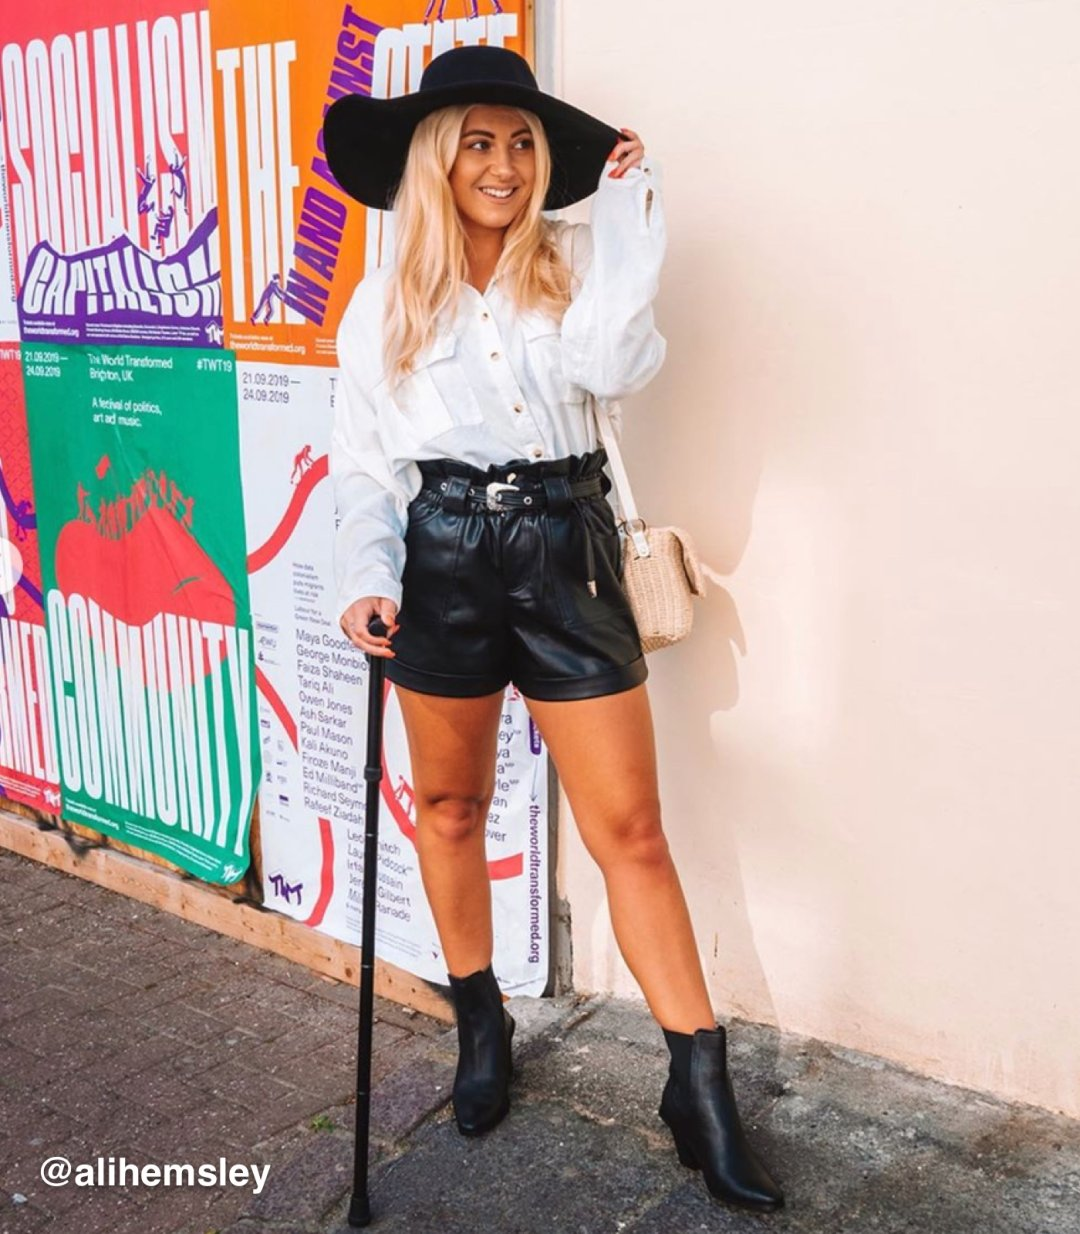 Shop River Island Womens Black belted faux leather Mom shorts, River Island Womens White western fringe long sleeve shirt, River Island Womens Black PU band fedora hat, River Island Womens Black leather western boots and more